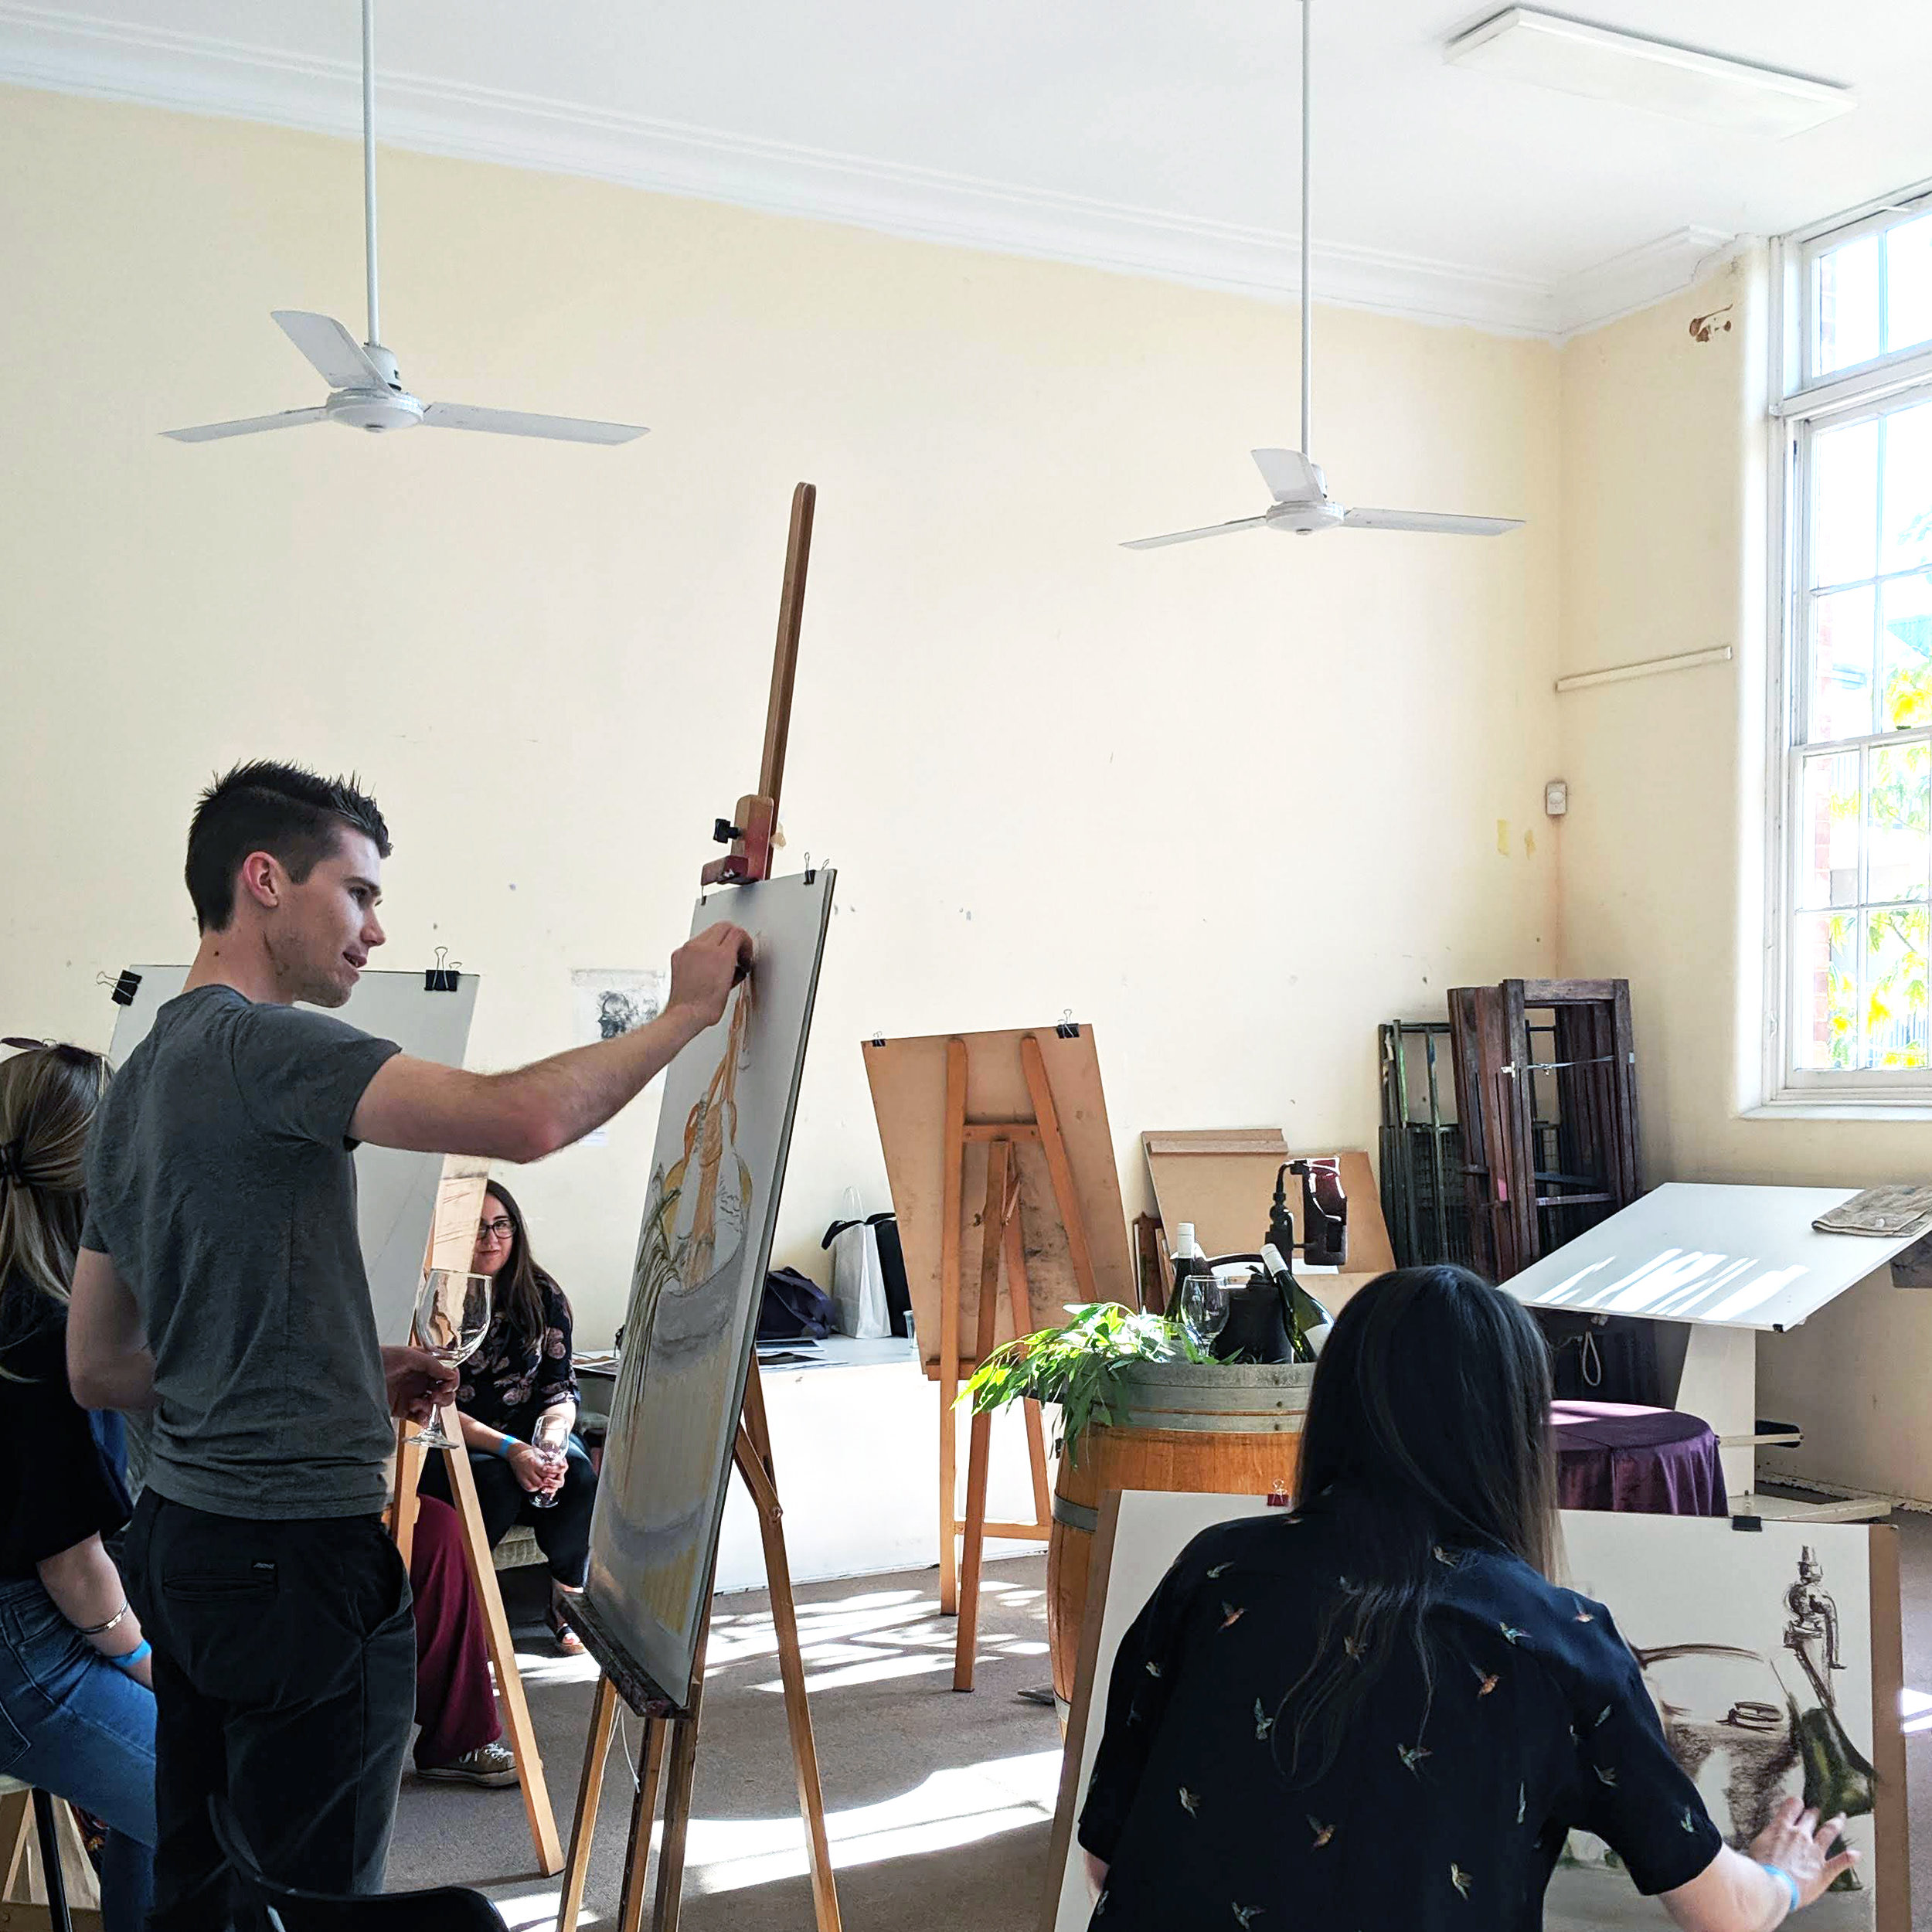 Still Life Drawing - Pick up an easel and have a go at drawing our floral still life arrangement. With materials such as paper, pastels, charcoal, and kneadable erasers provided, you're free to draw a blooming masterpiece.FREE